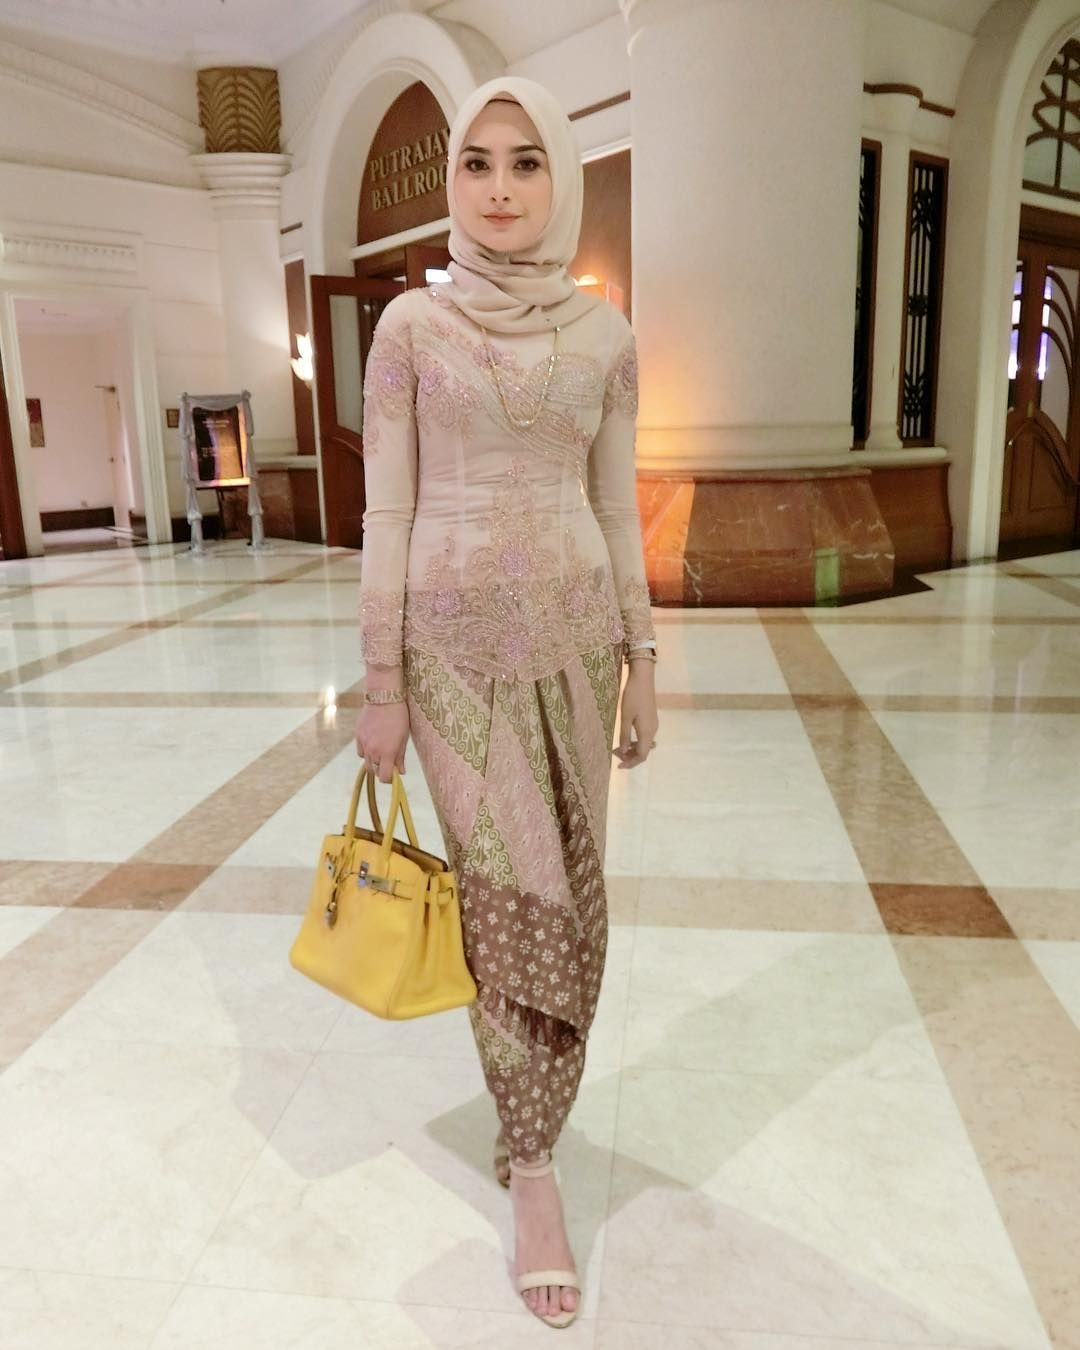 pin wahyu fitri on gaya hijab batik fashion kebaya